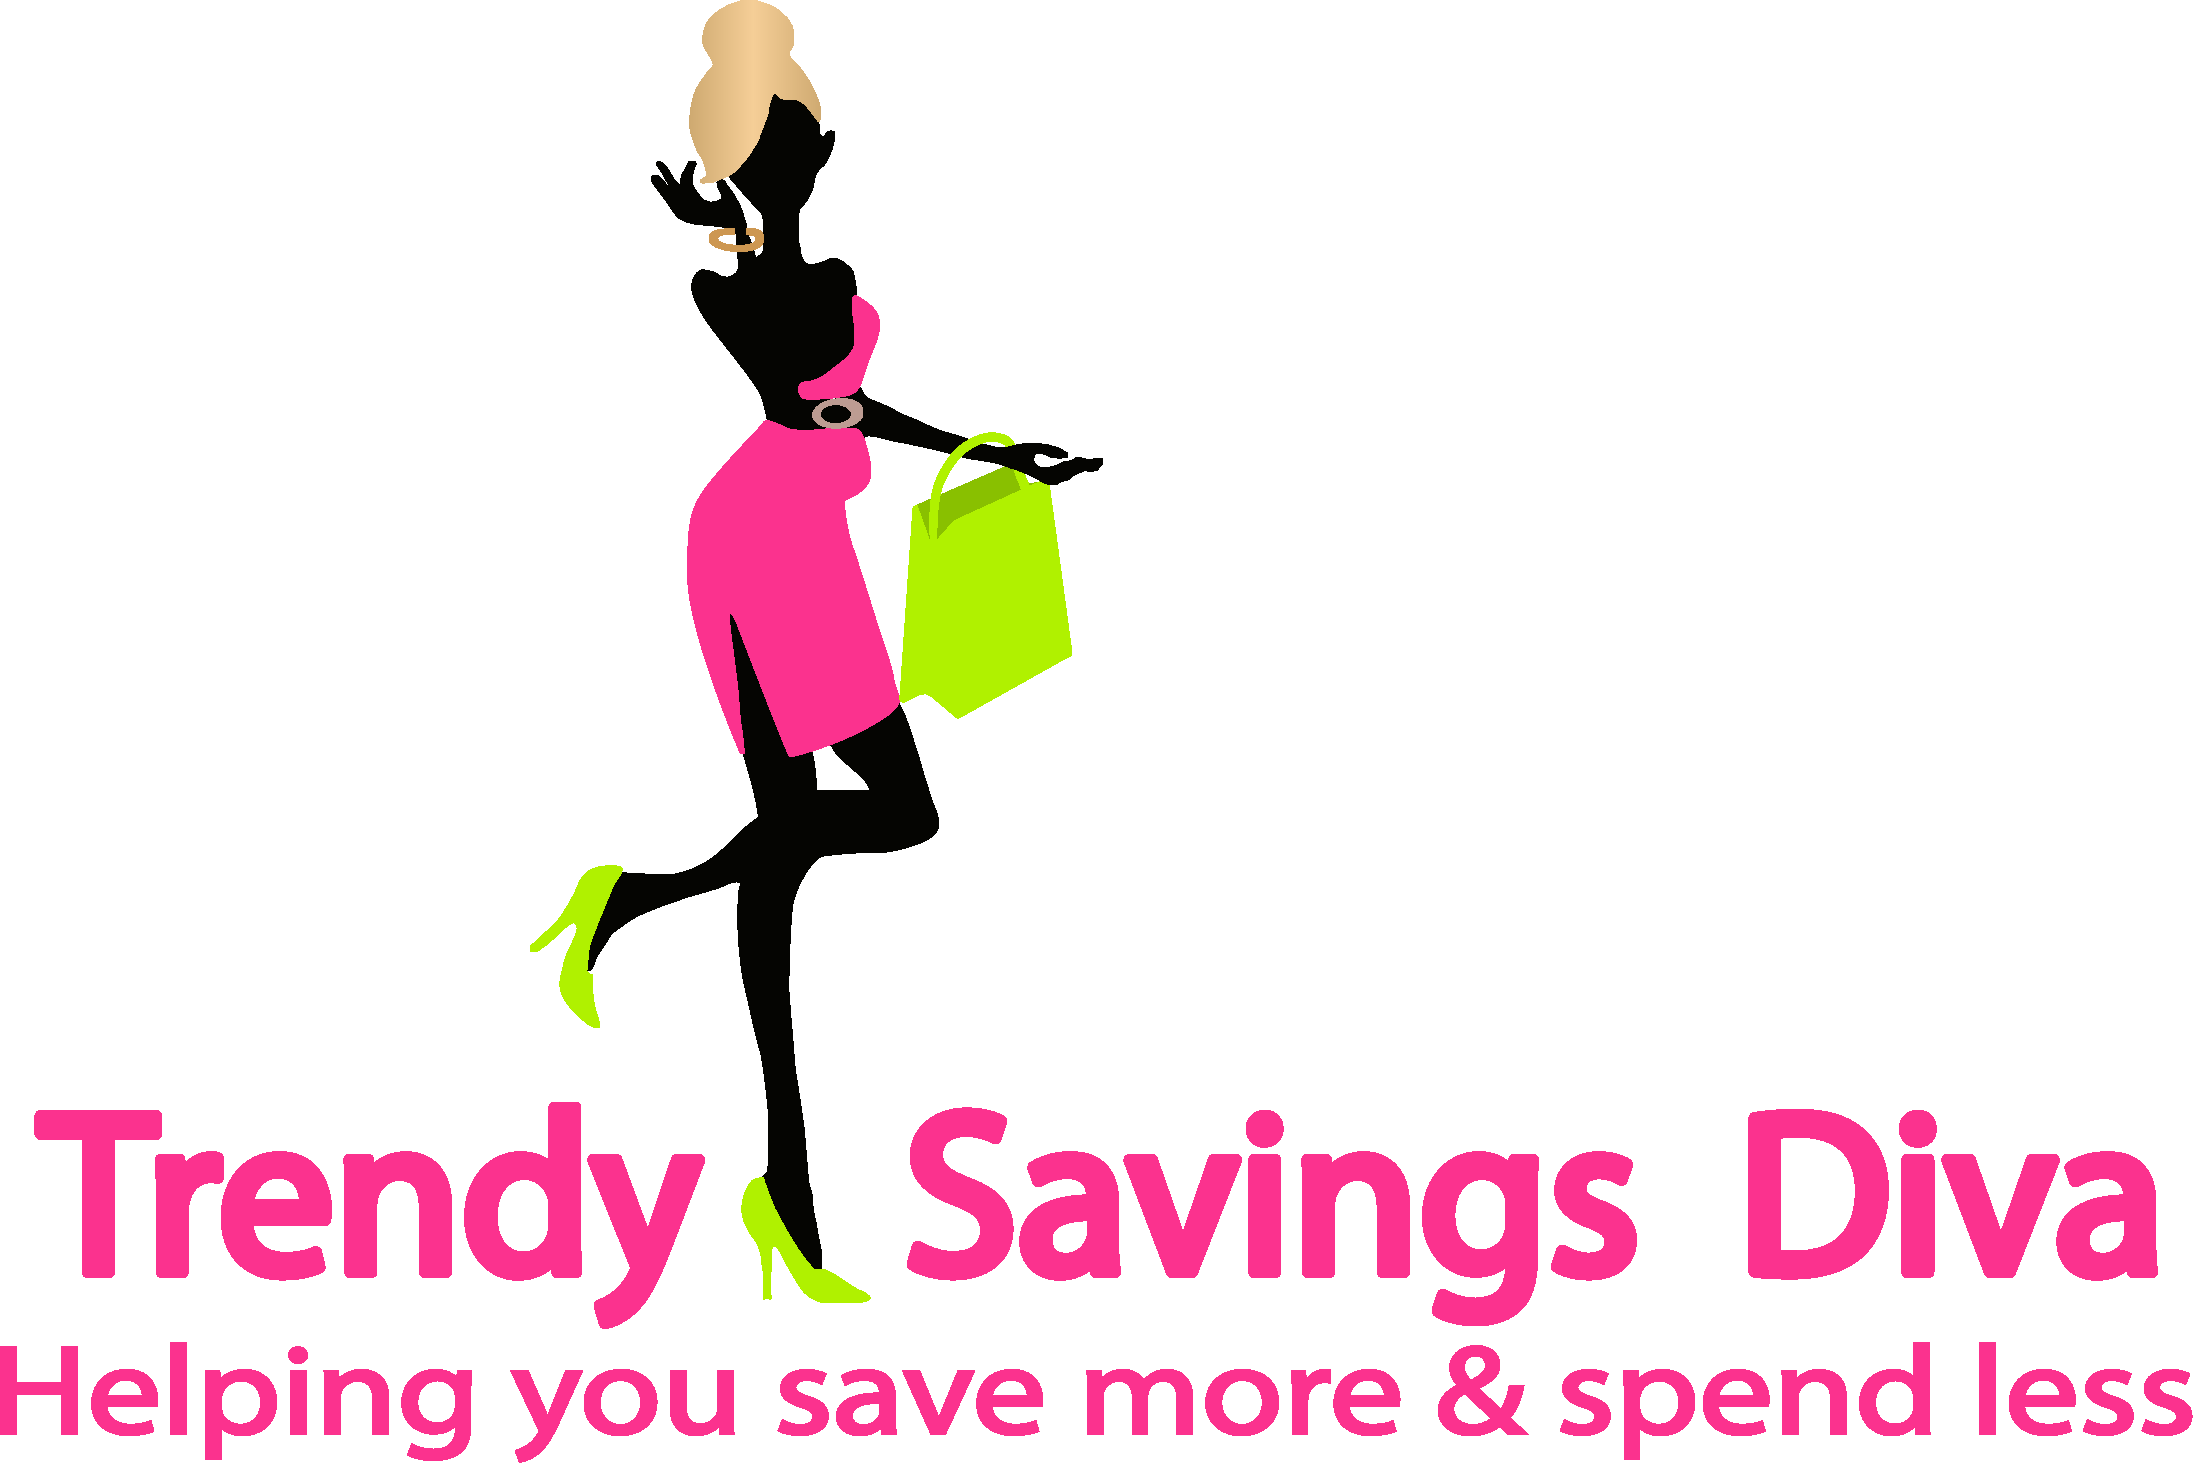 Trendy Savings